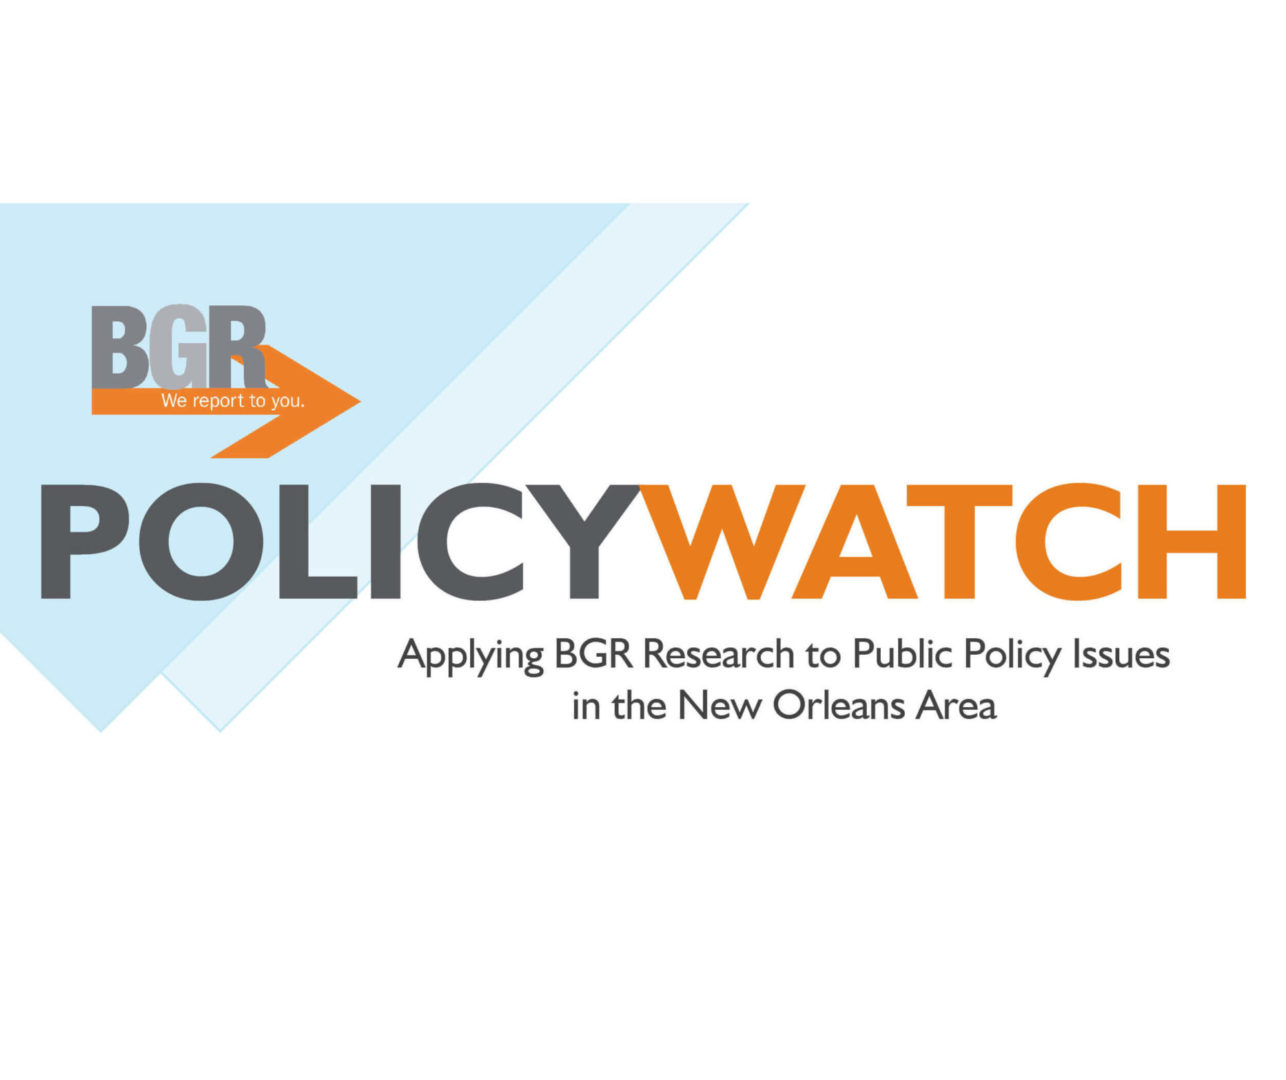 PolicyWatch: Applying BGR Research to Public Policy Issues in the New Orleans Area